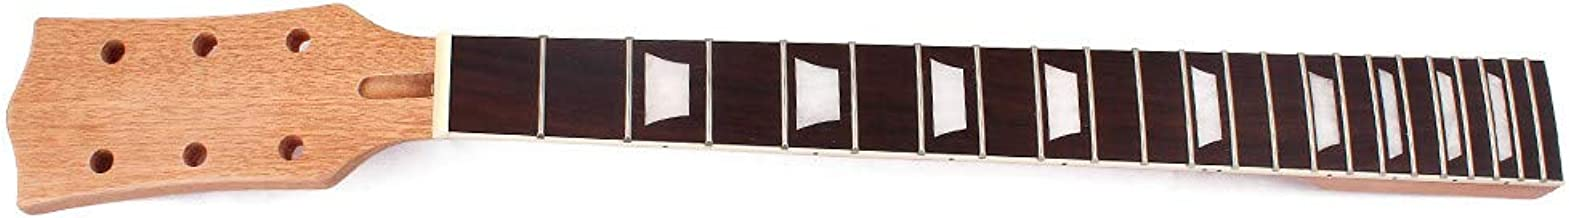 Electric Guitar Neck Replacement 22 Fret 24.75 Inch Mahogany Truss Rod Bolt On